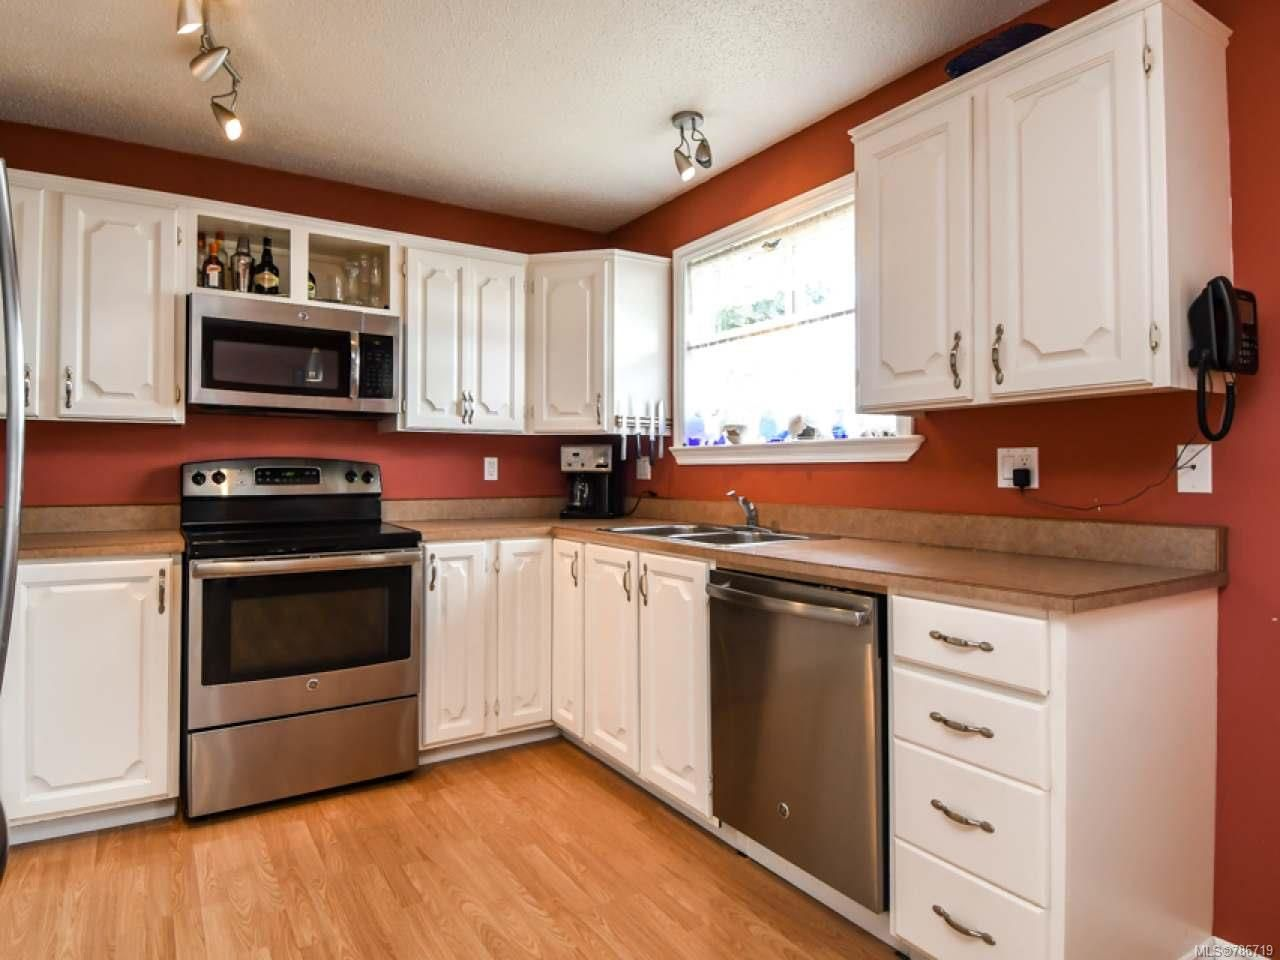 Photo 13: Photos: 1234 Denis Rd in CAMPBELL RIVER: CR Campbell River Central House for sale (Campbell River)  : MLS®# 786719